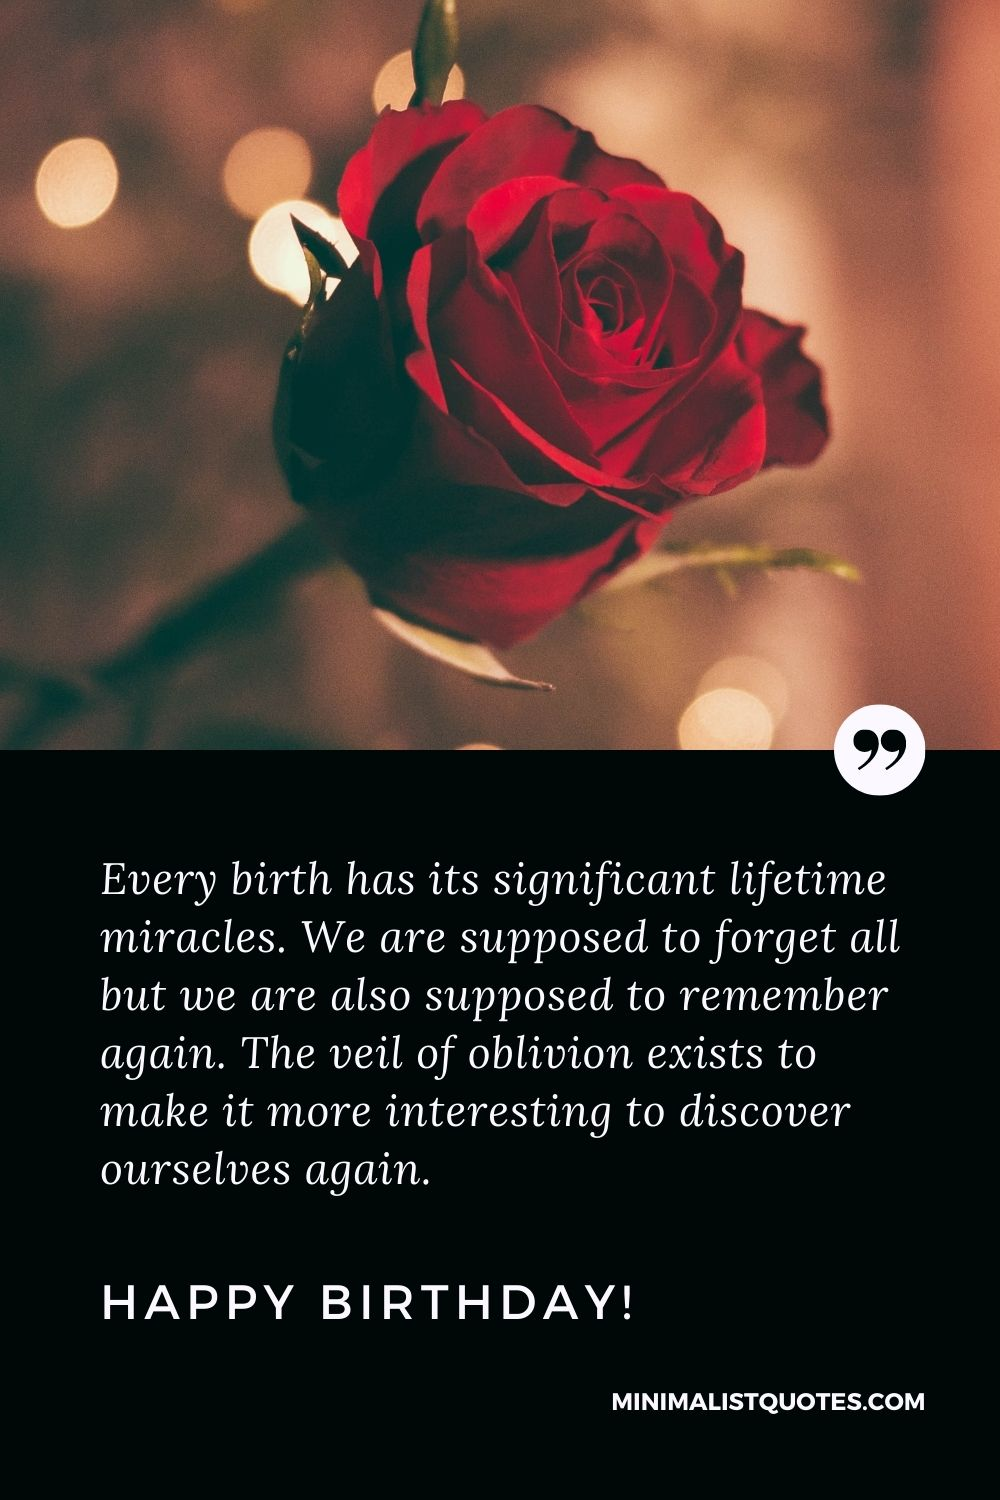 Birthday Quote, Wish & Message With Image: Every birth has its significant lifetime miracles. We are supposed to forget all but we are also supposed to remember again. The veil of oblivion exists to make it more interesting to discover ourselves again. Happy Birthday!